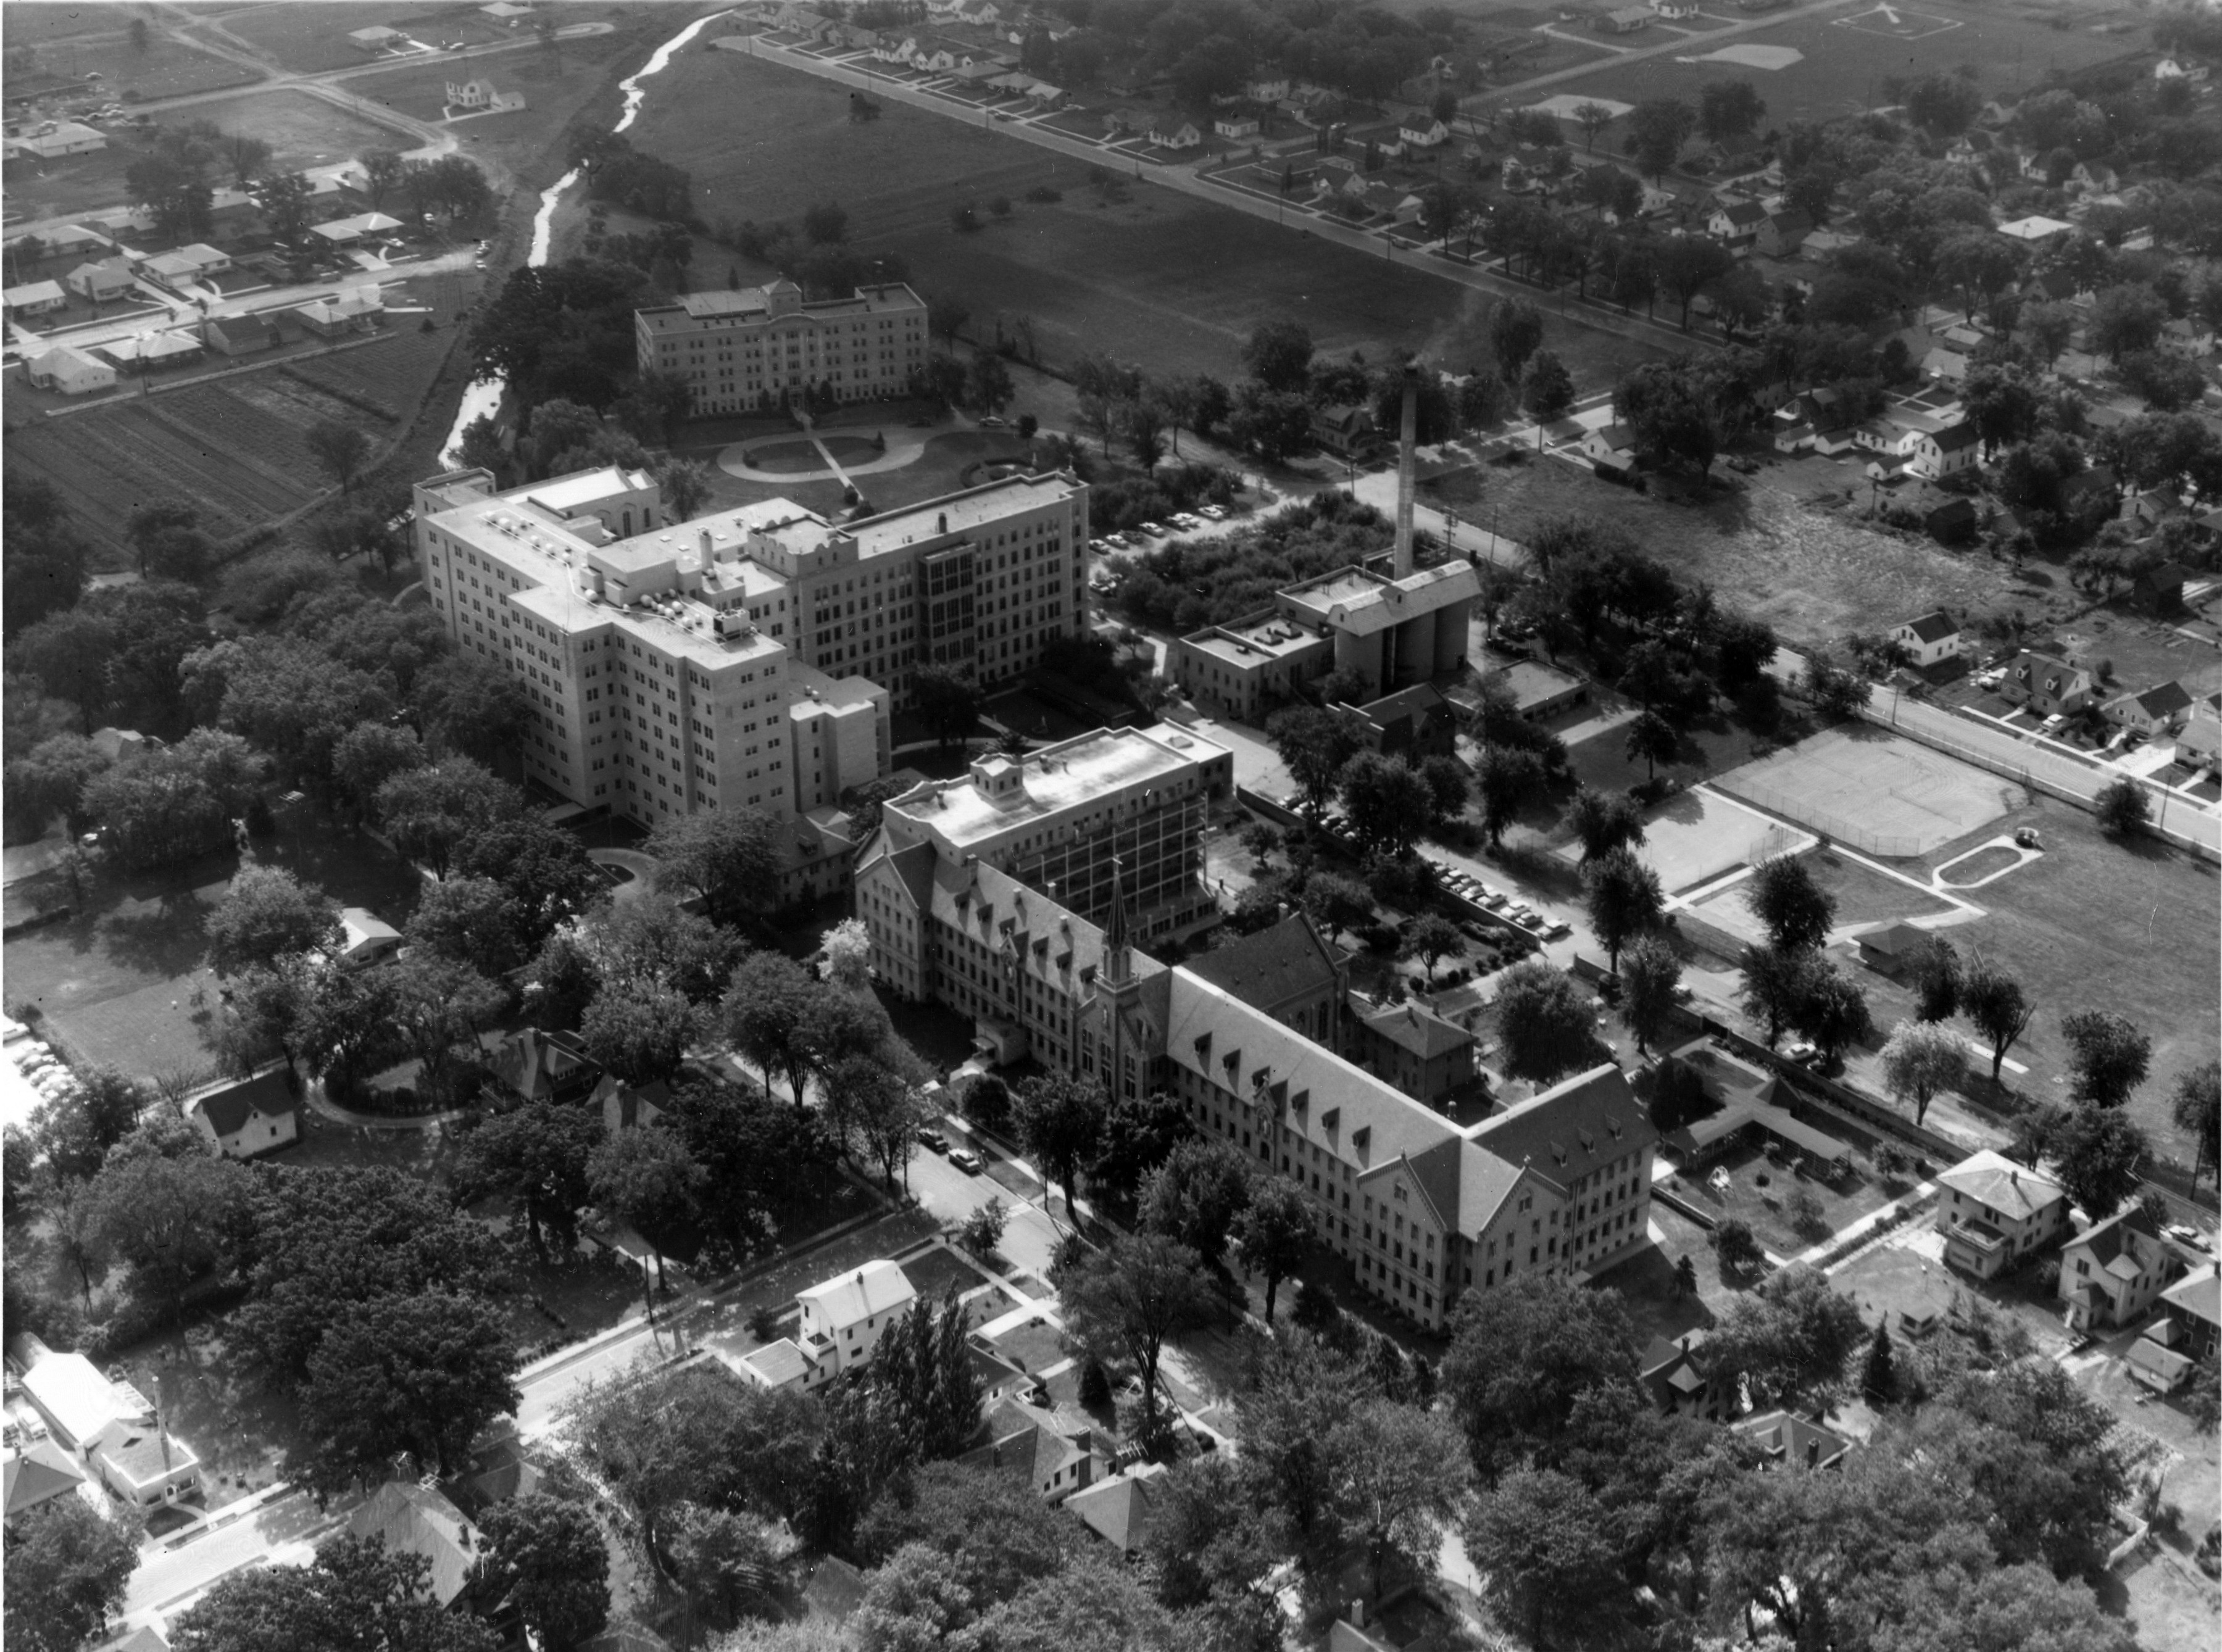 Aerial view of St. Agnes Hospital with convent in the foreground and St. Agnes School of Nursing in the background, 1957